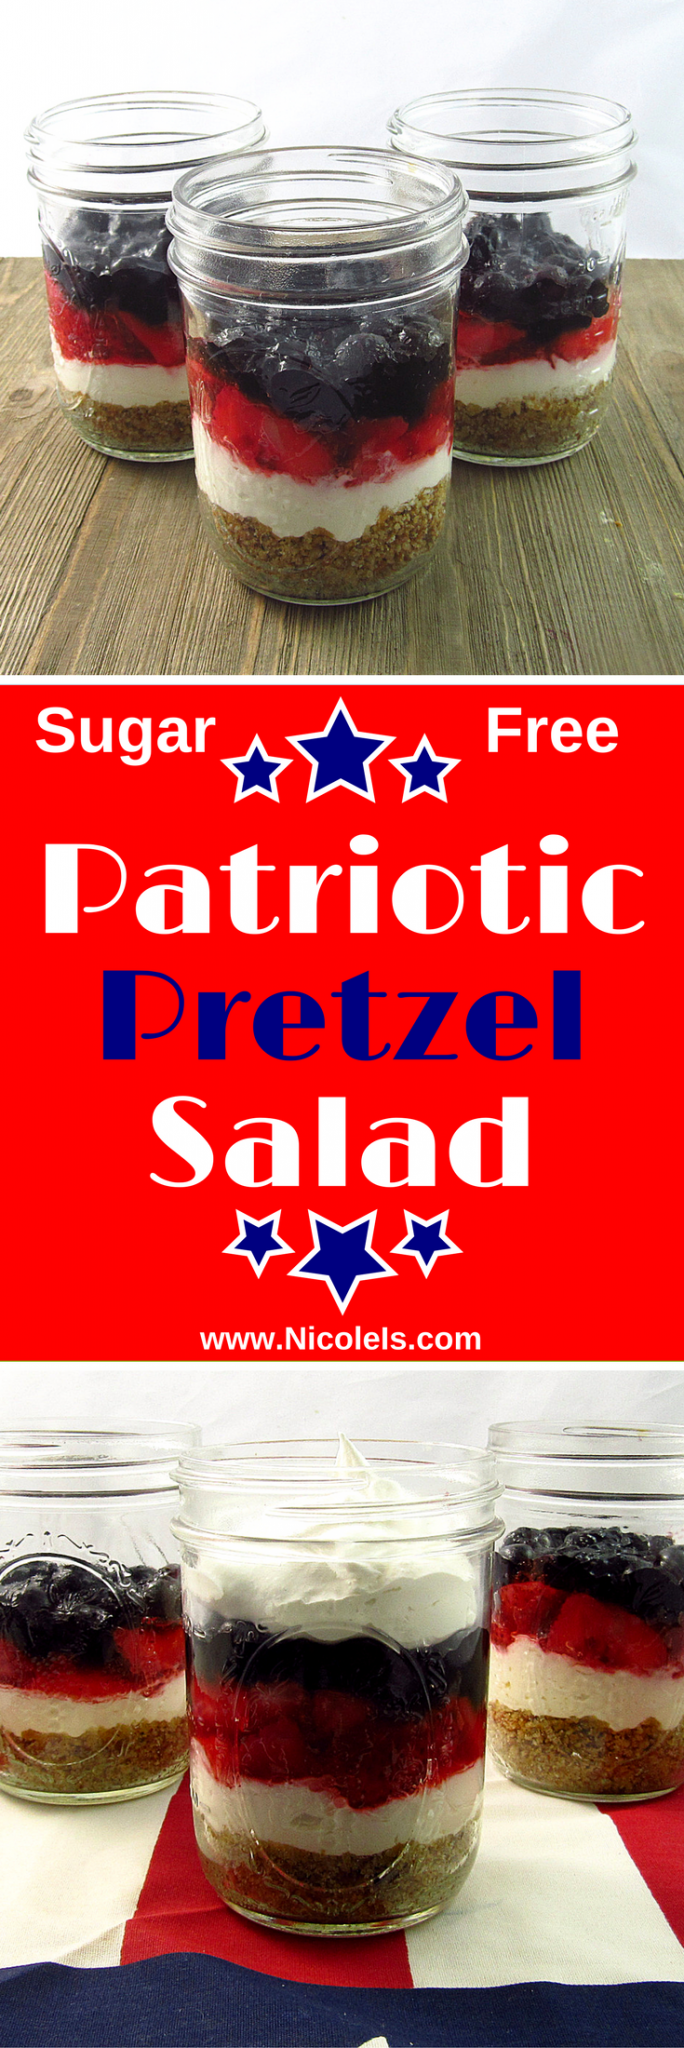 Sugar Free Patriotic Pretzel Salad Dessert with fresh strawberries and blueberries! Delicious dessert for Memorial Day, 4th of July, Labor Day, or just any ol' BBQ! Diabetic Friendly www.nicoleis.com